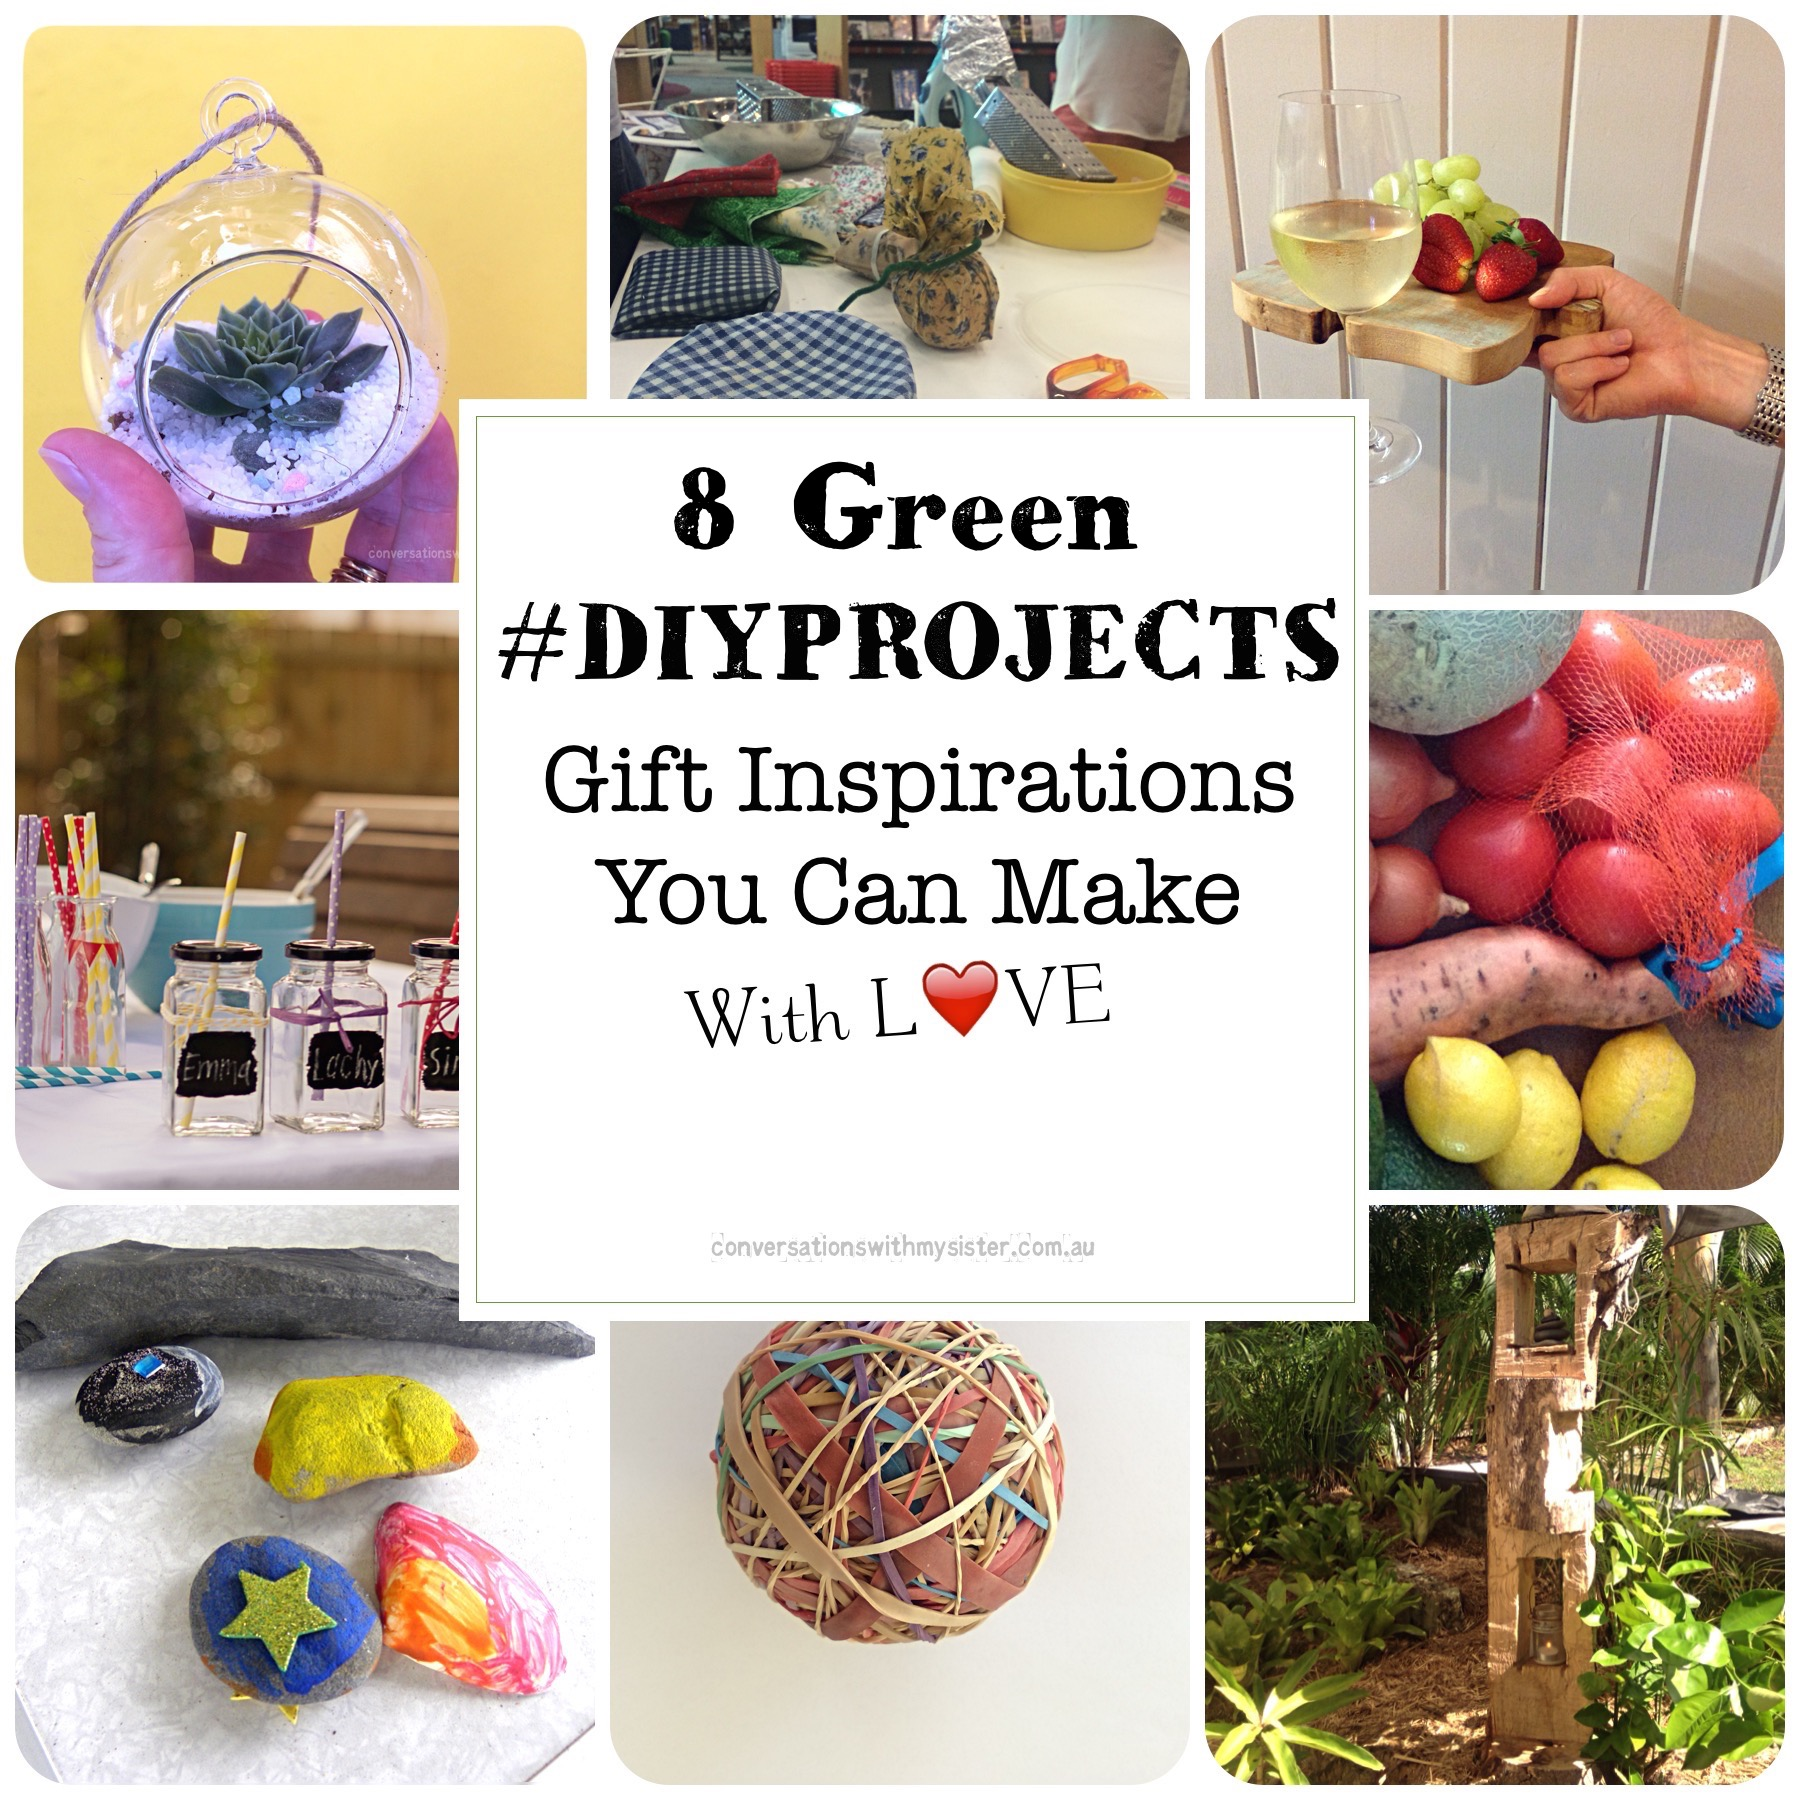 8 Green #DIYProjects - Gift Inspirations You Can Make With Love_conversationswithmysister.com.au